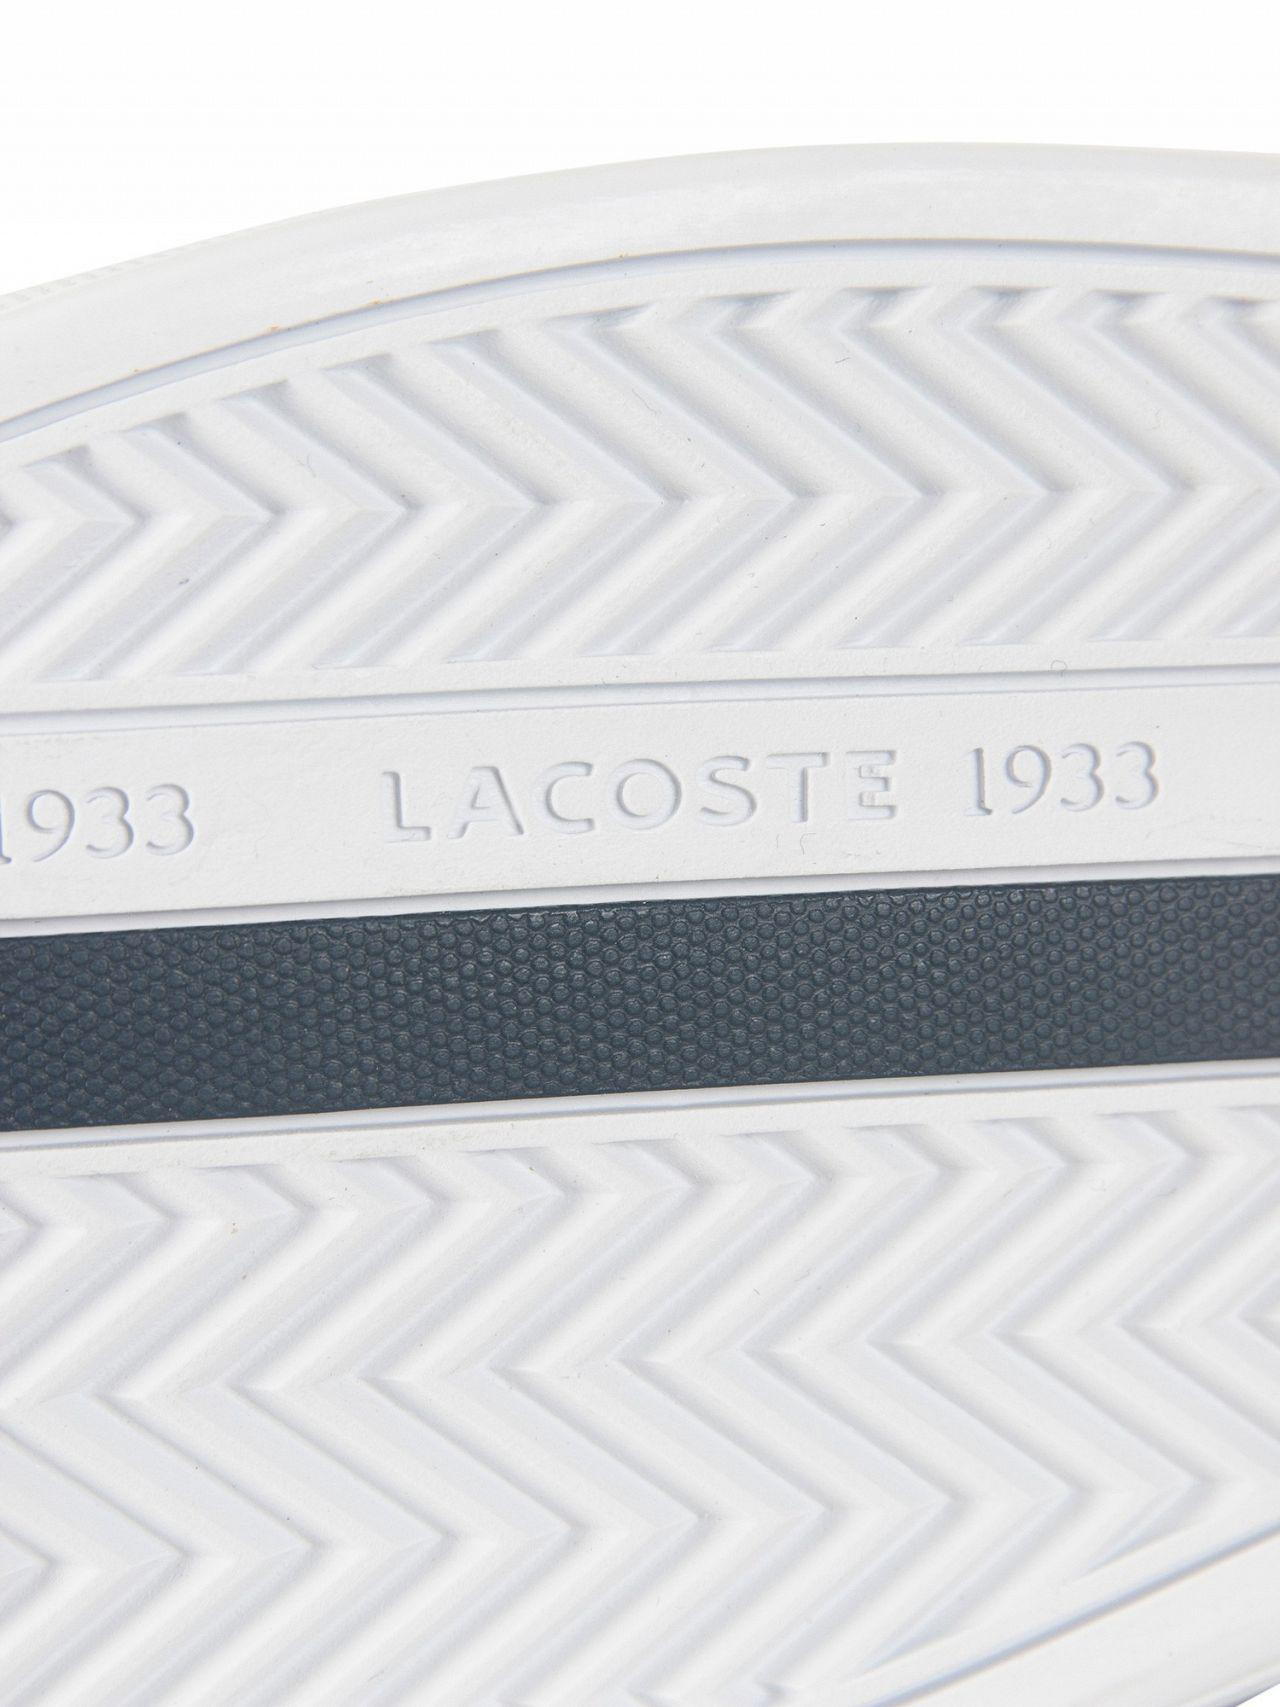 9c831aad4e7b1c Lyst - Lacoste White navy Europa 118 1 Qsp Spm Leather Trainers in ...